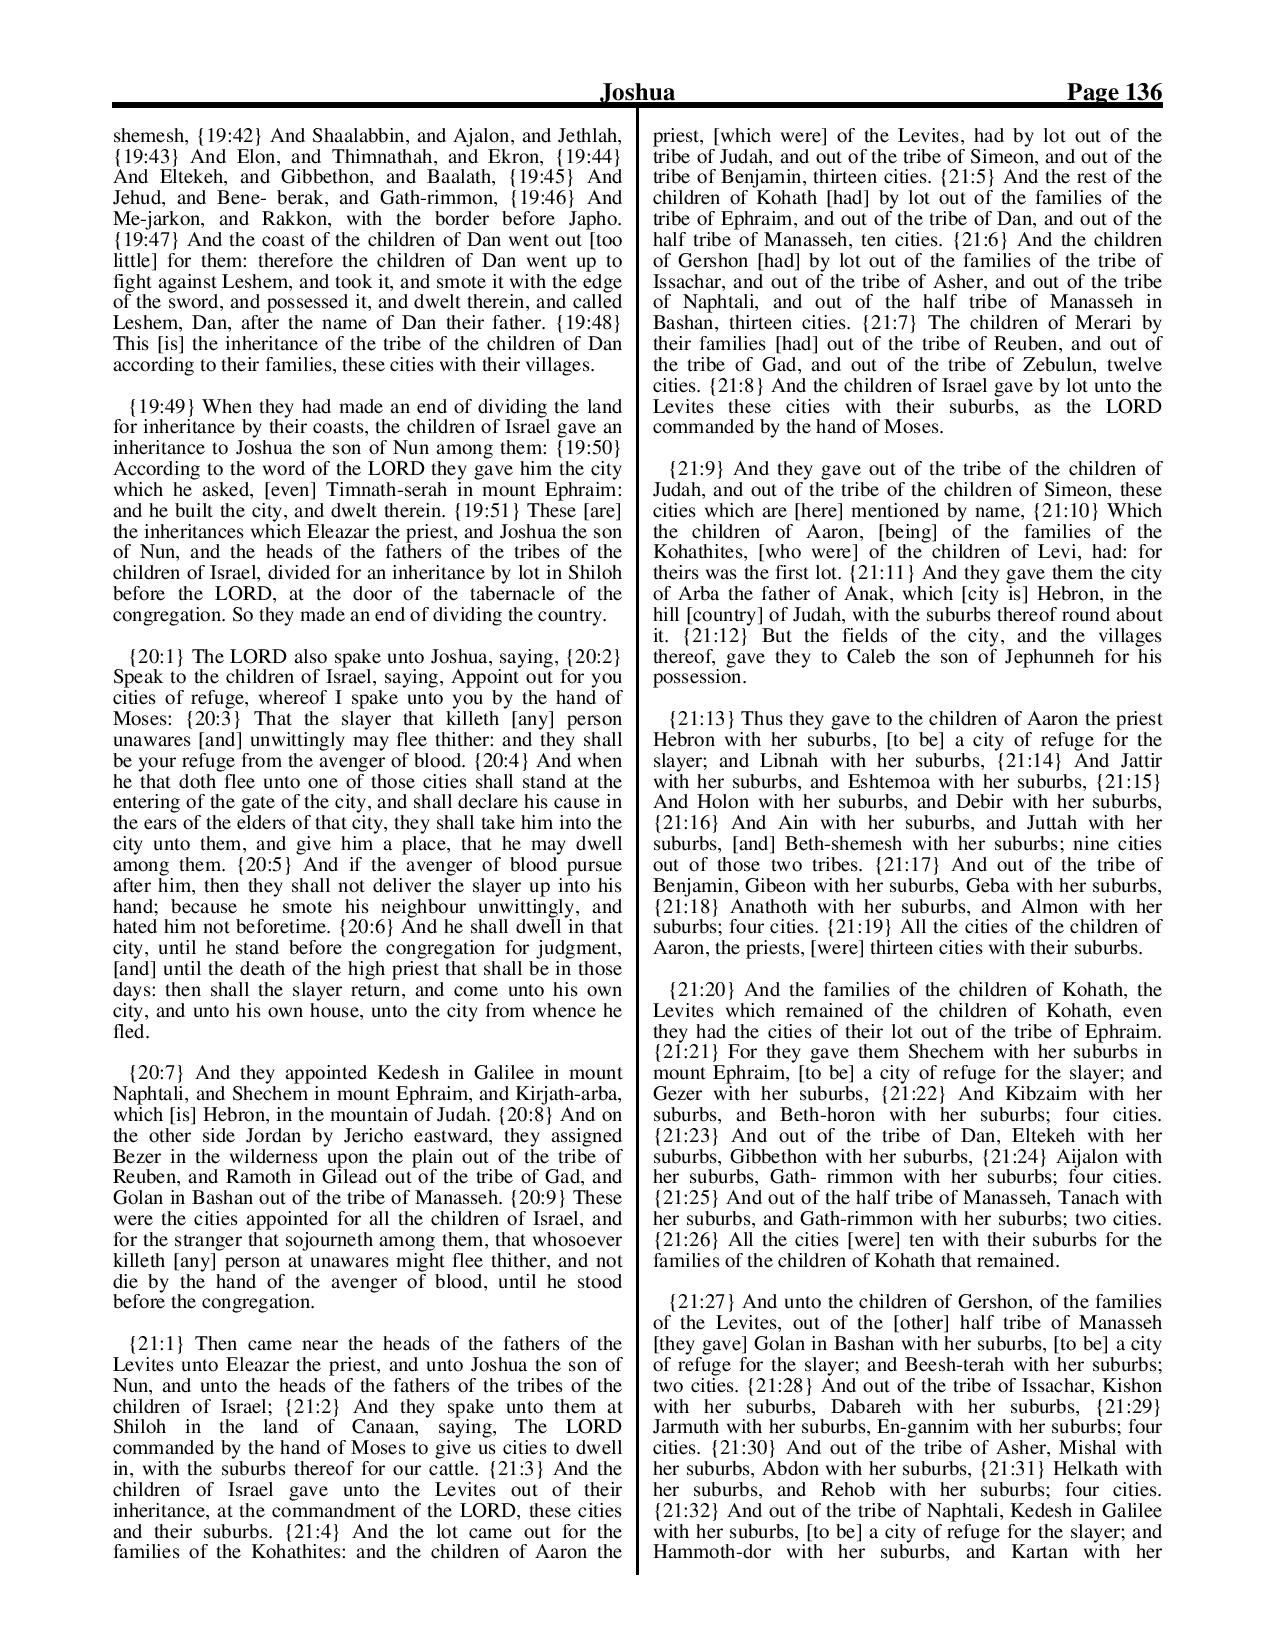 King-James-Bible-KJV-Bible-PDF-page-157